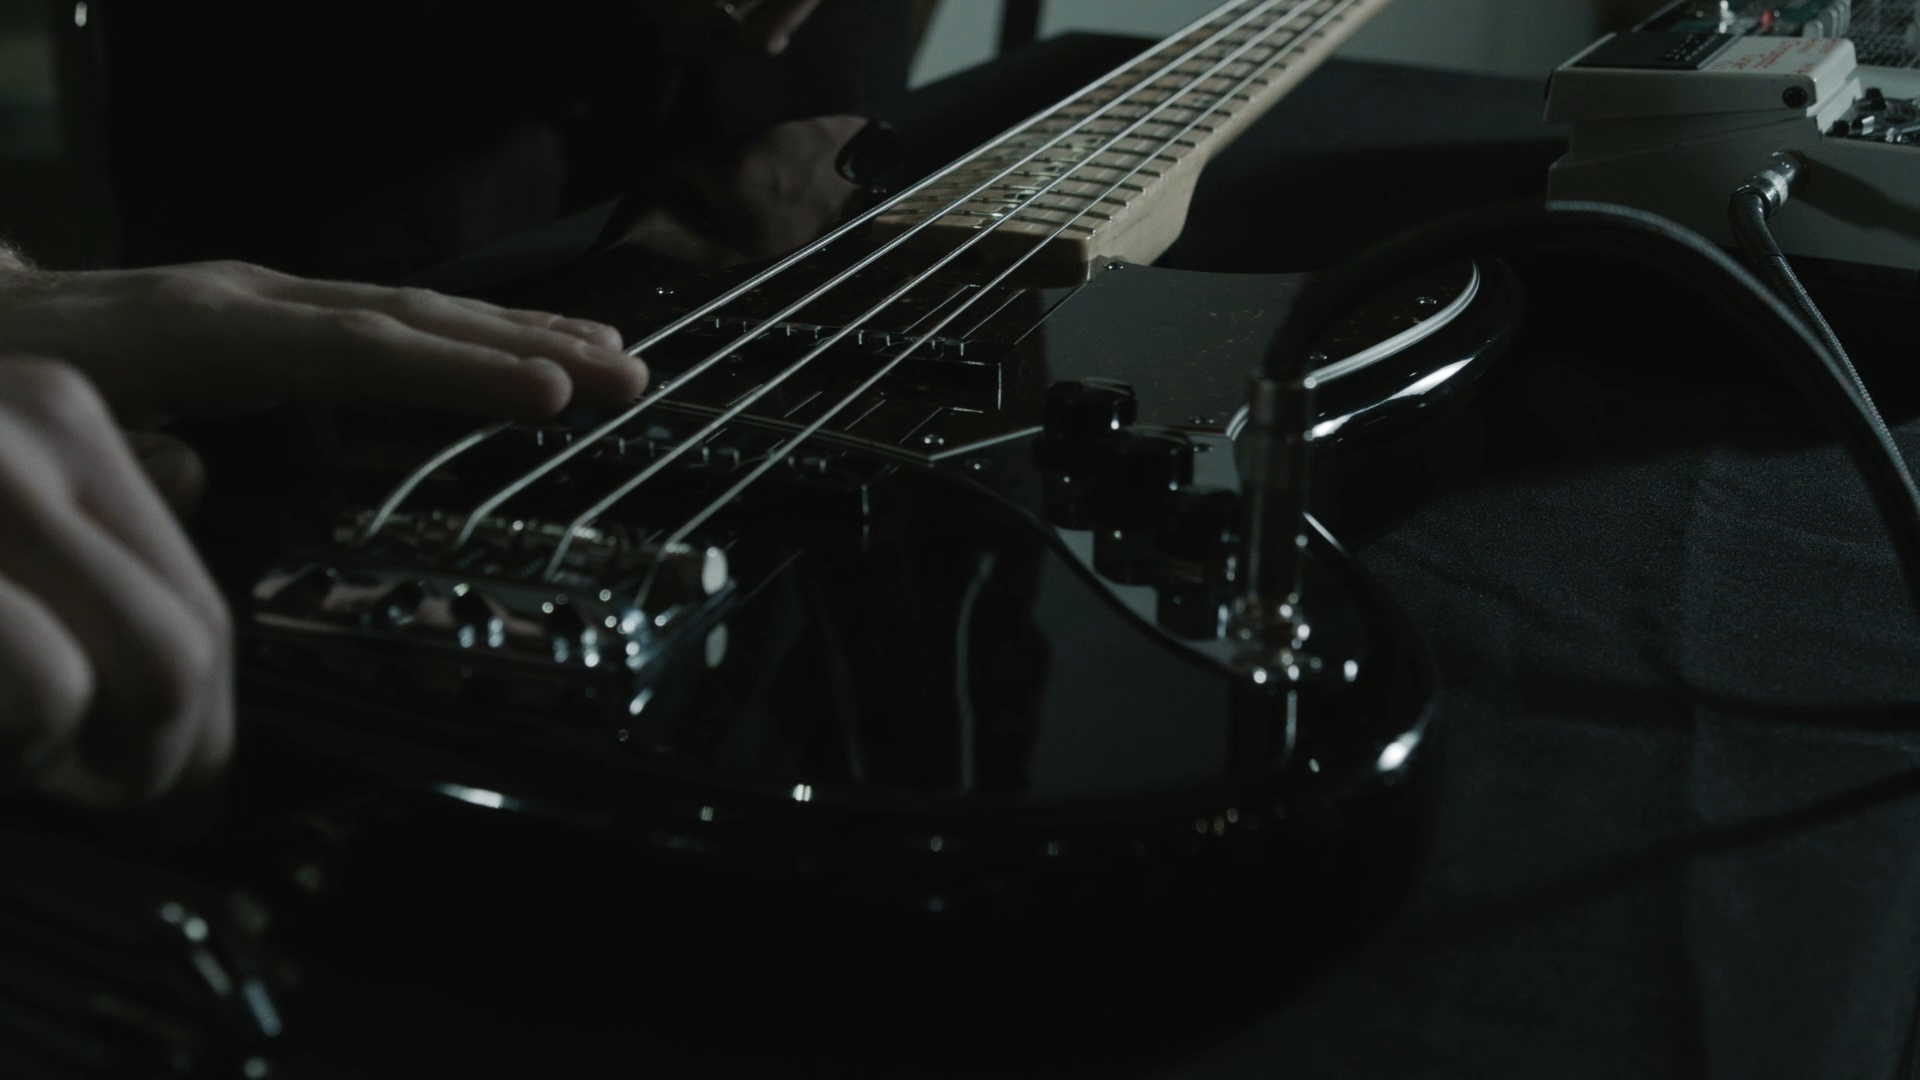 Changing strings and setting up your bass still